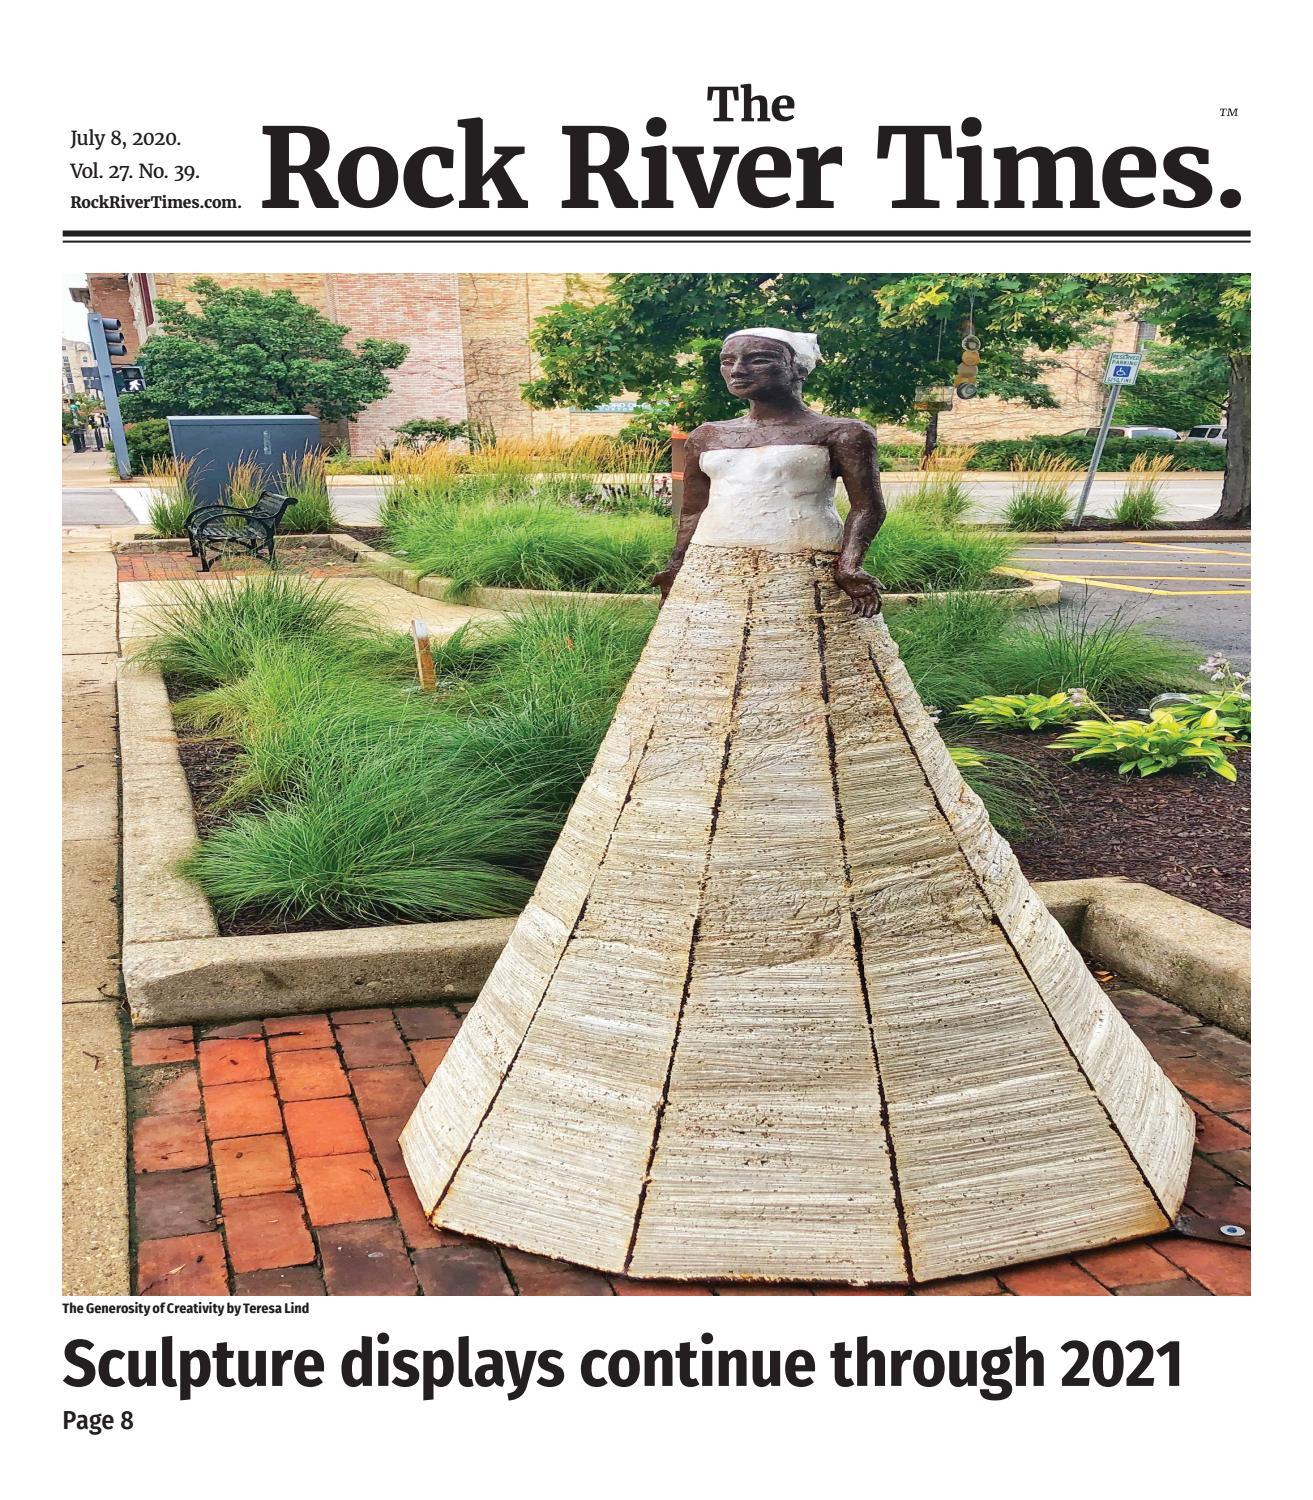 The Rock River Times July 8 2020 By Rockrivertimes7 Issuu